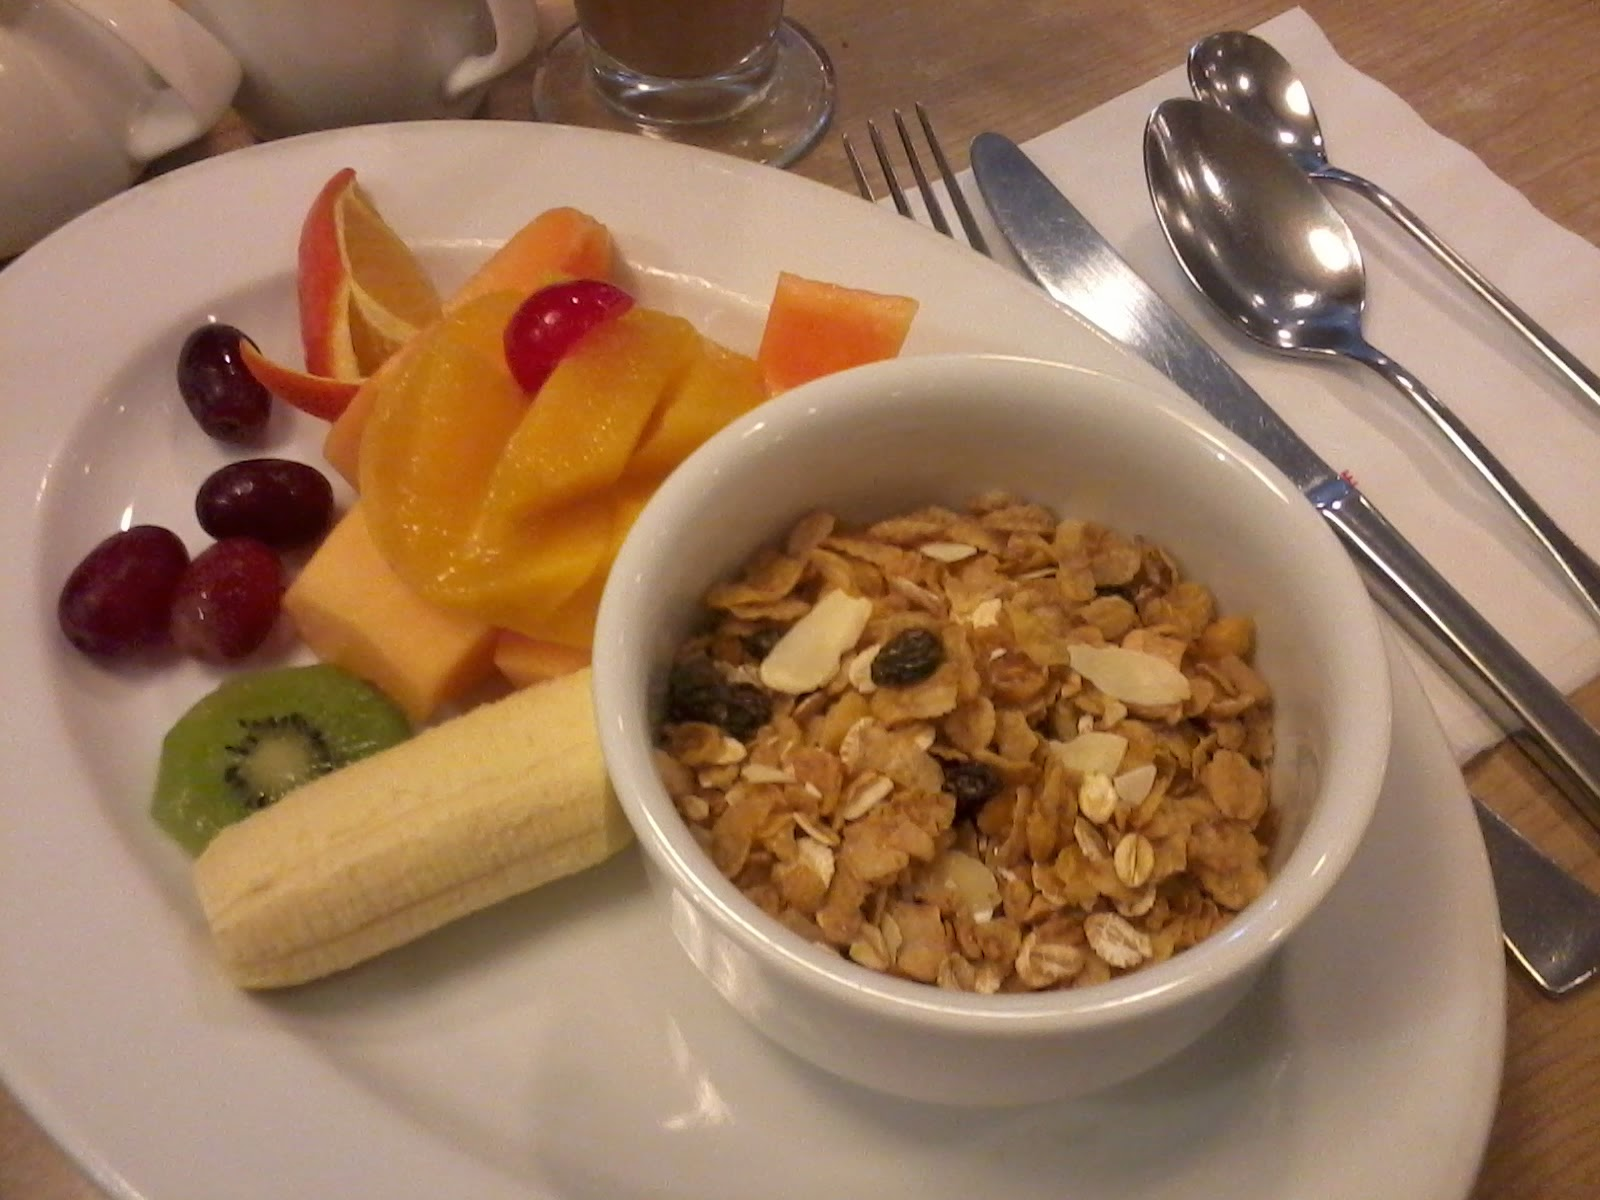 UCC fruits and cereal served